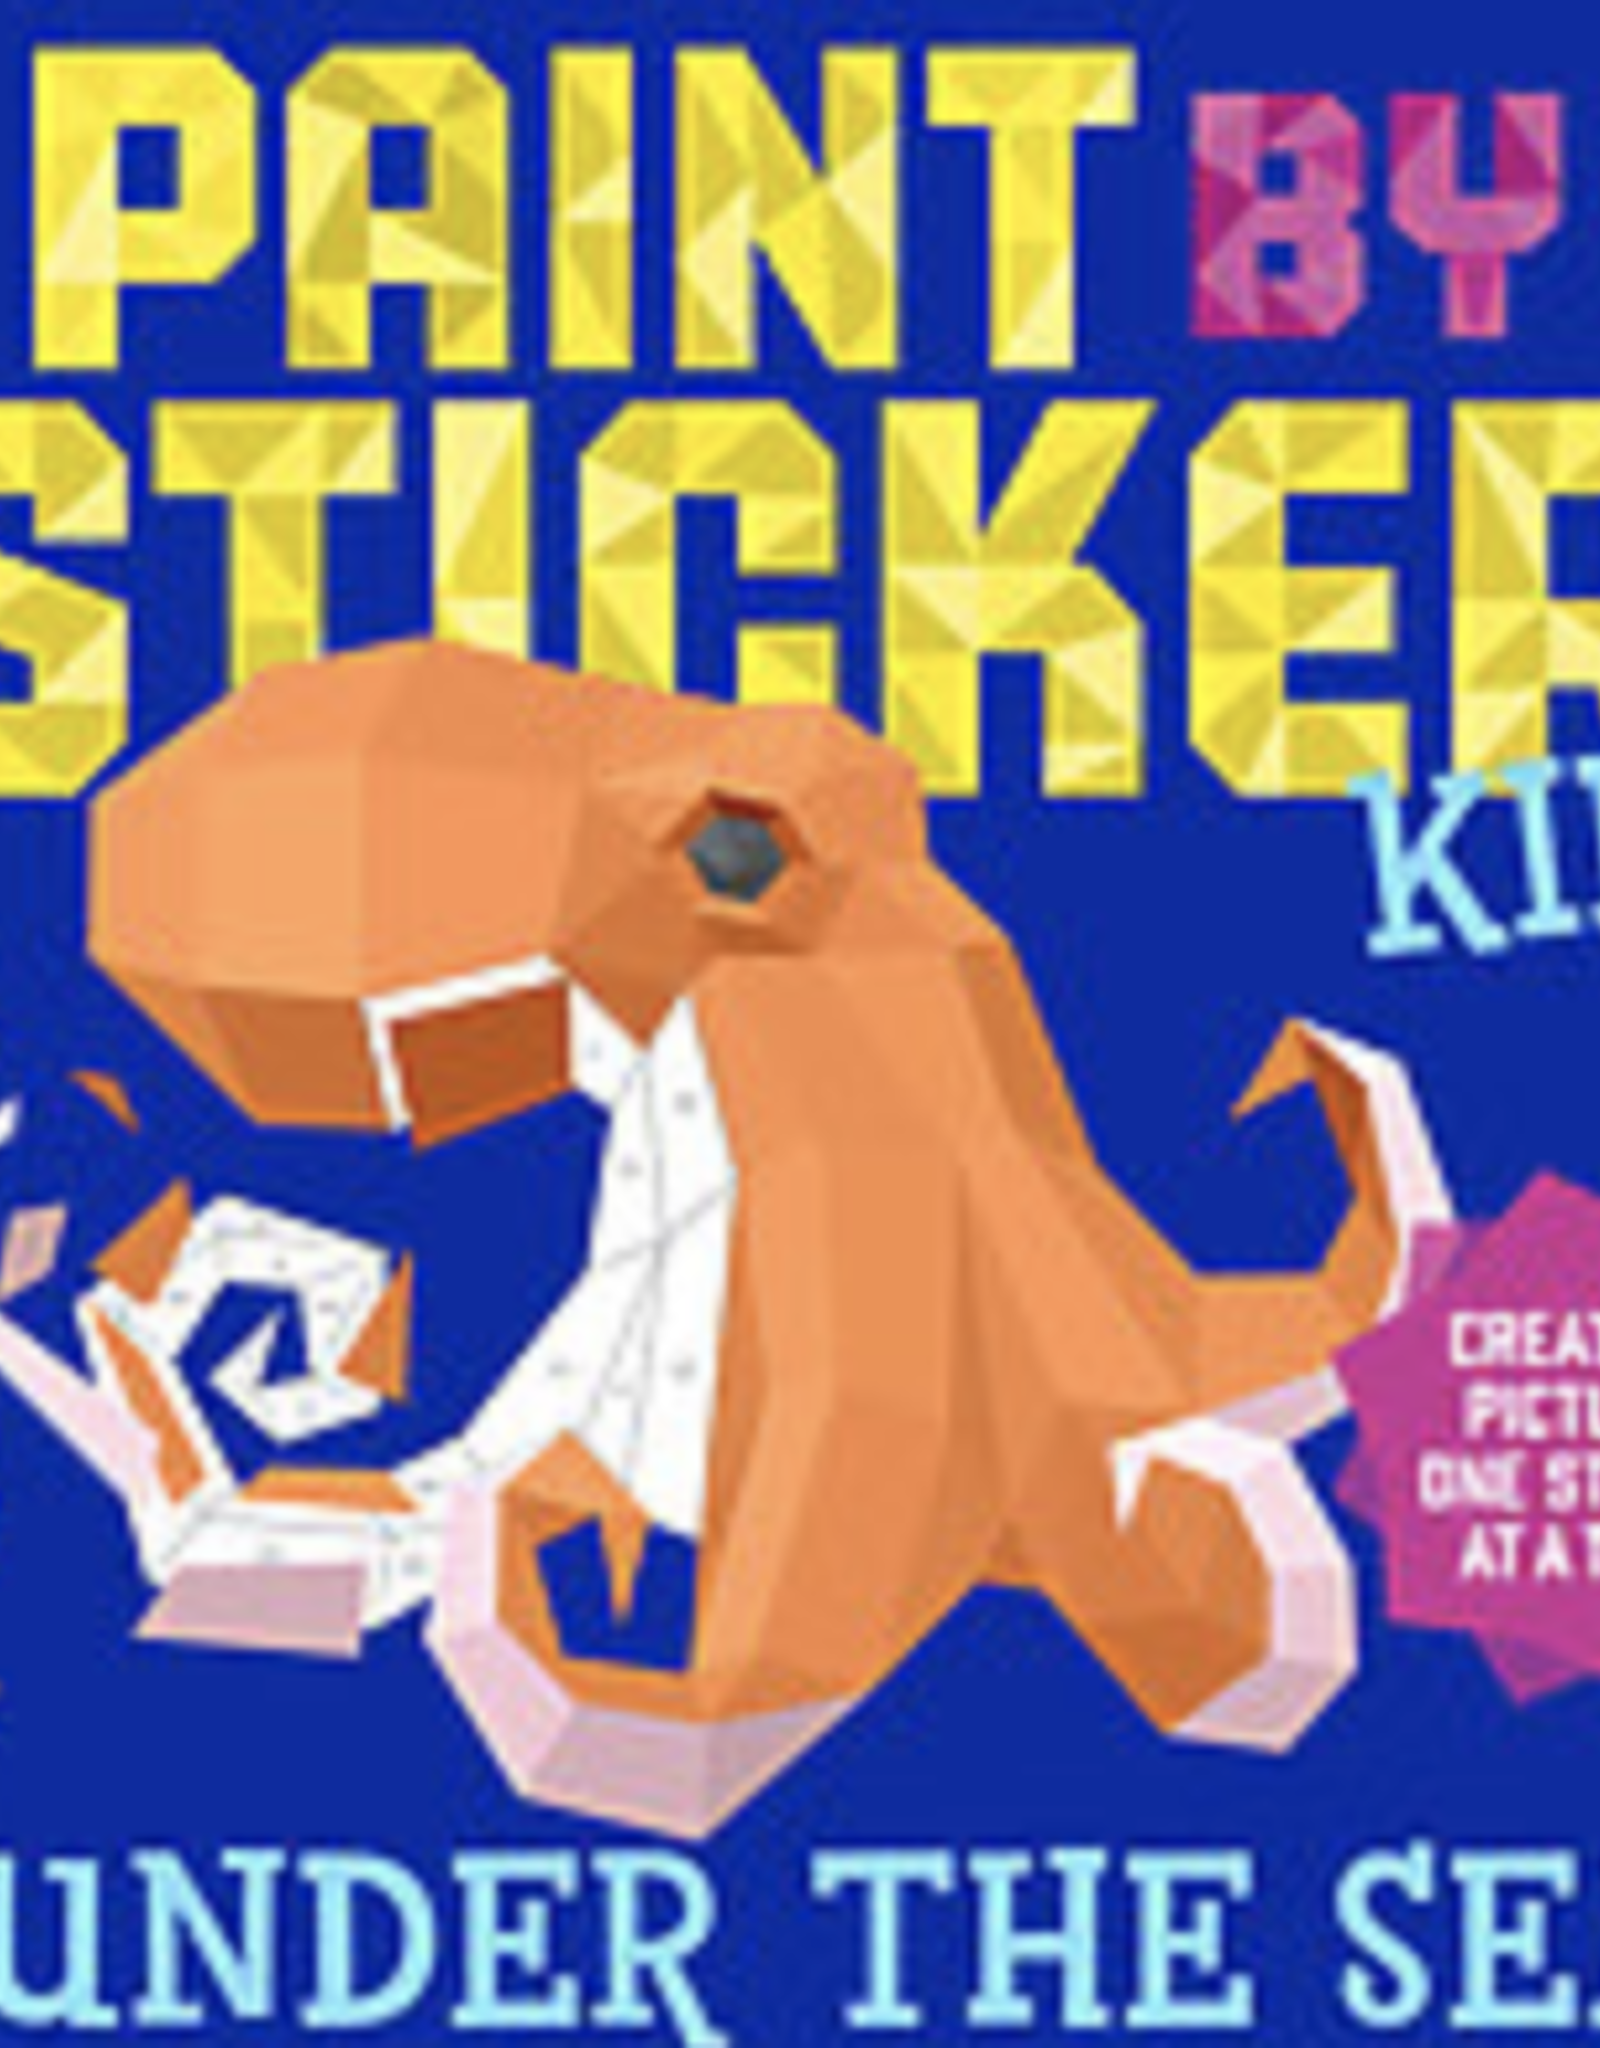 Paint By Sticker, Under the Sea